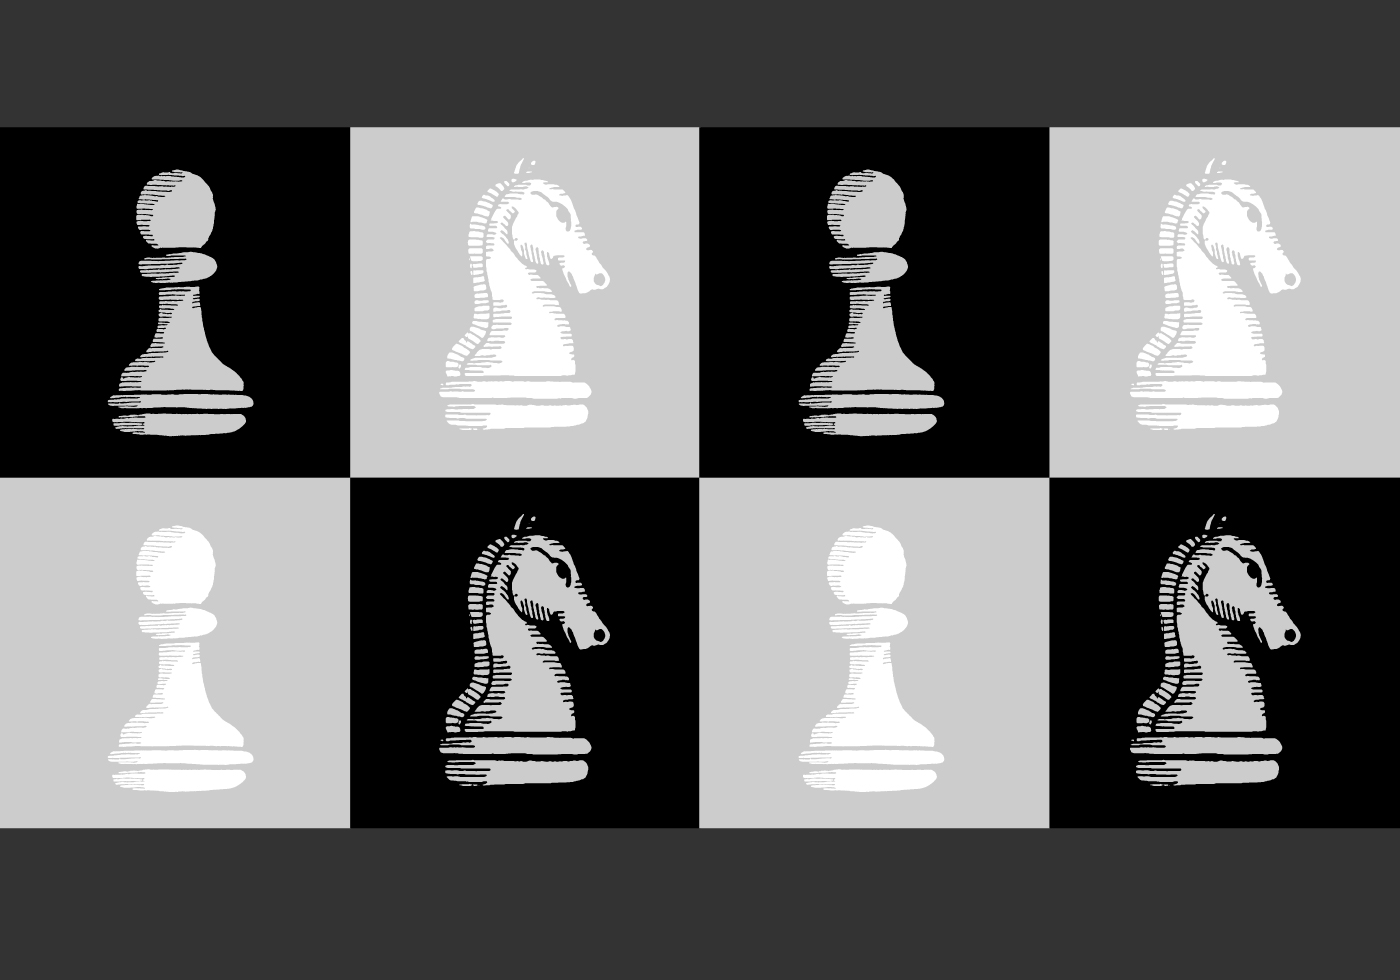 Chess Knight Pawn Vectors - Download Free Vector Art ...